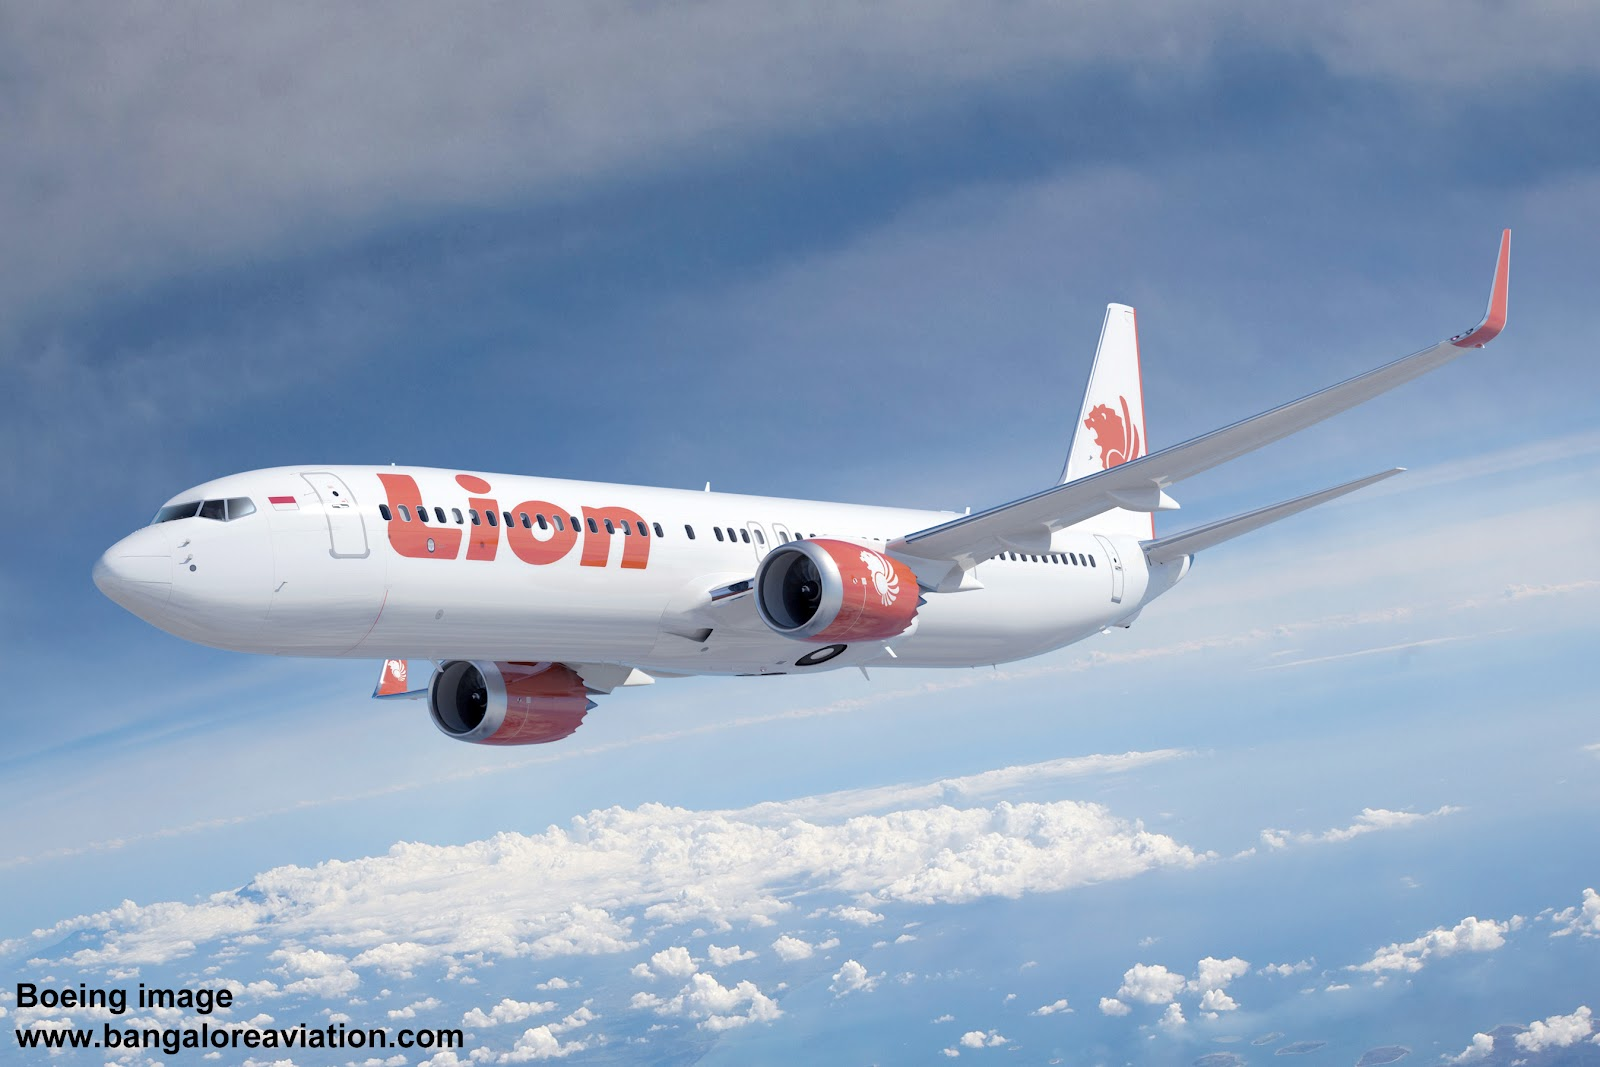 lion air launch customer of boeing 737 max 9 confirms largest ever commercial plane order for boeing bangalore aviation